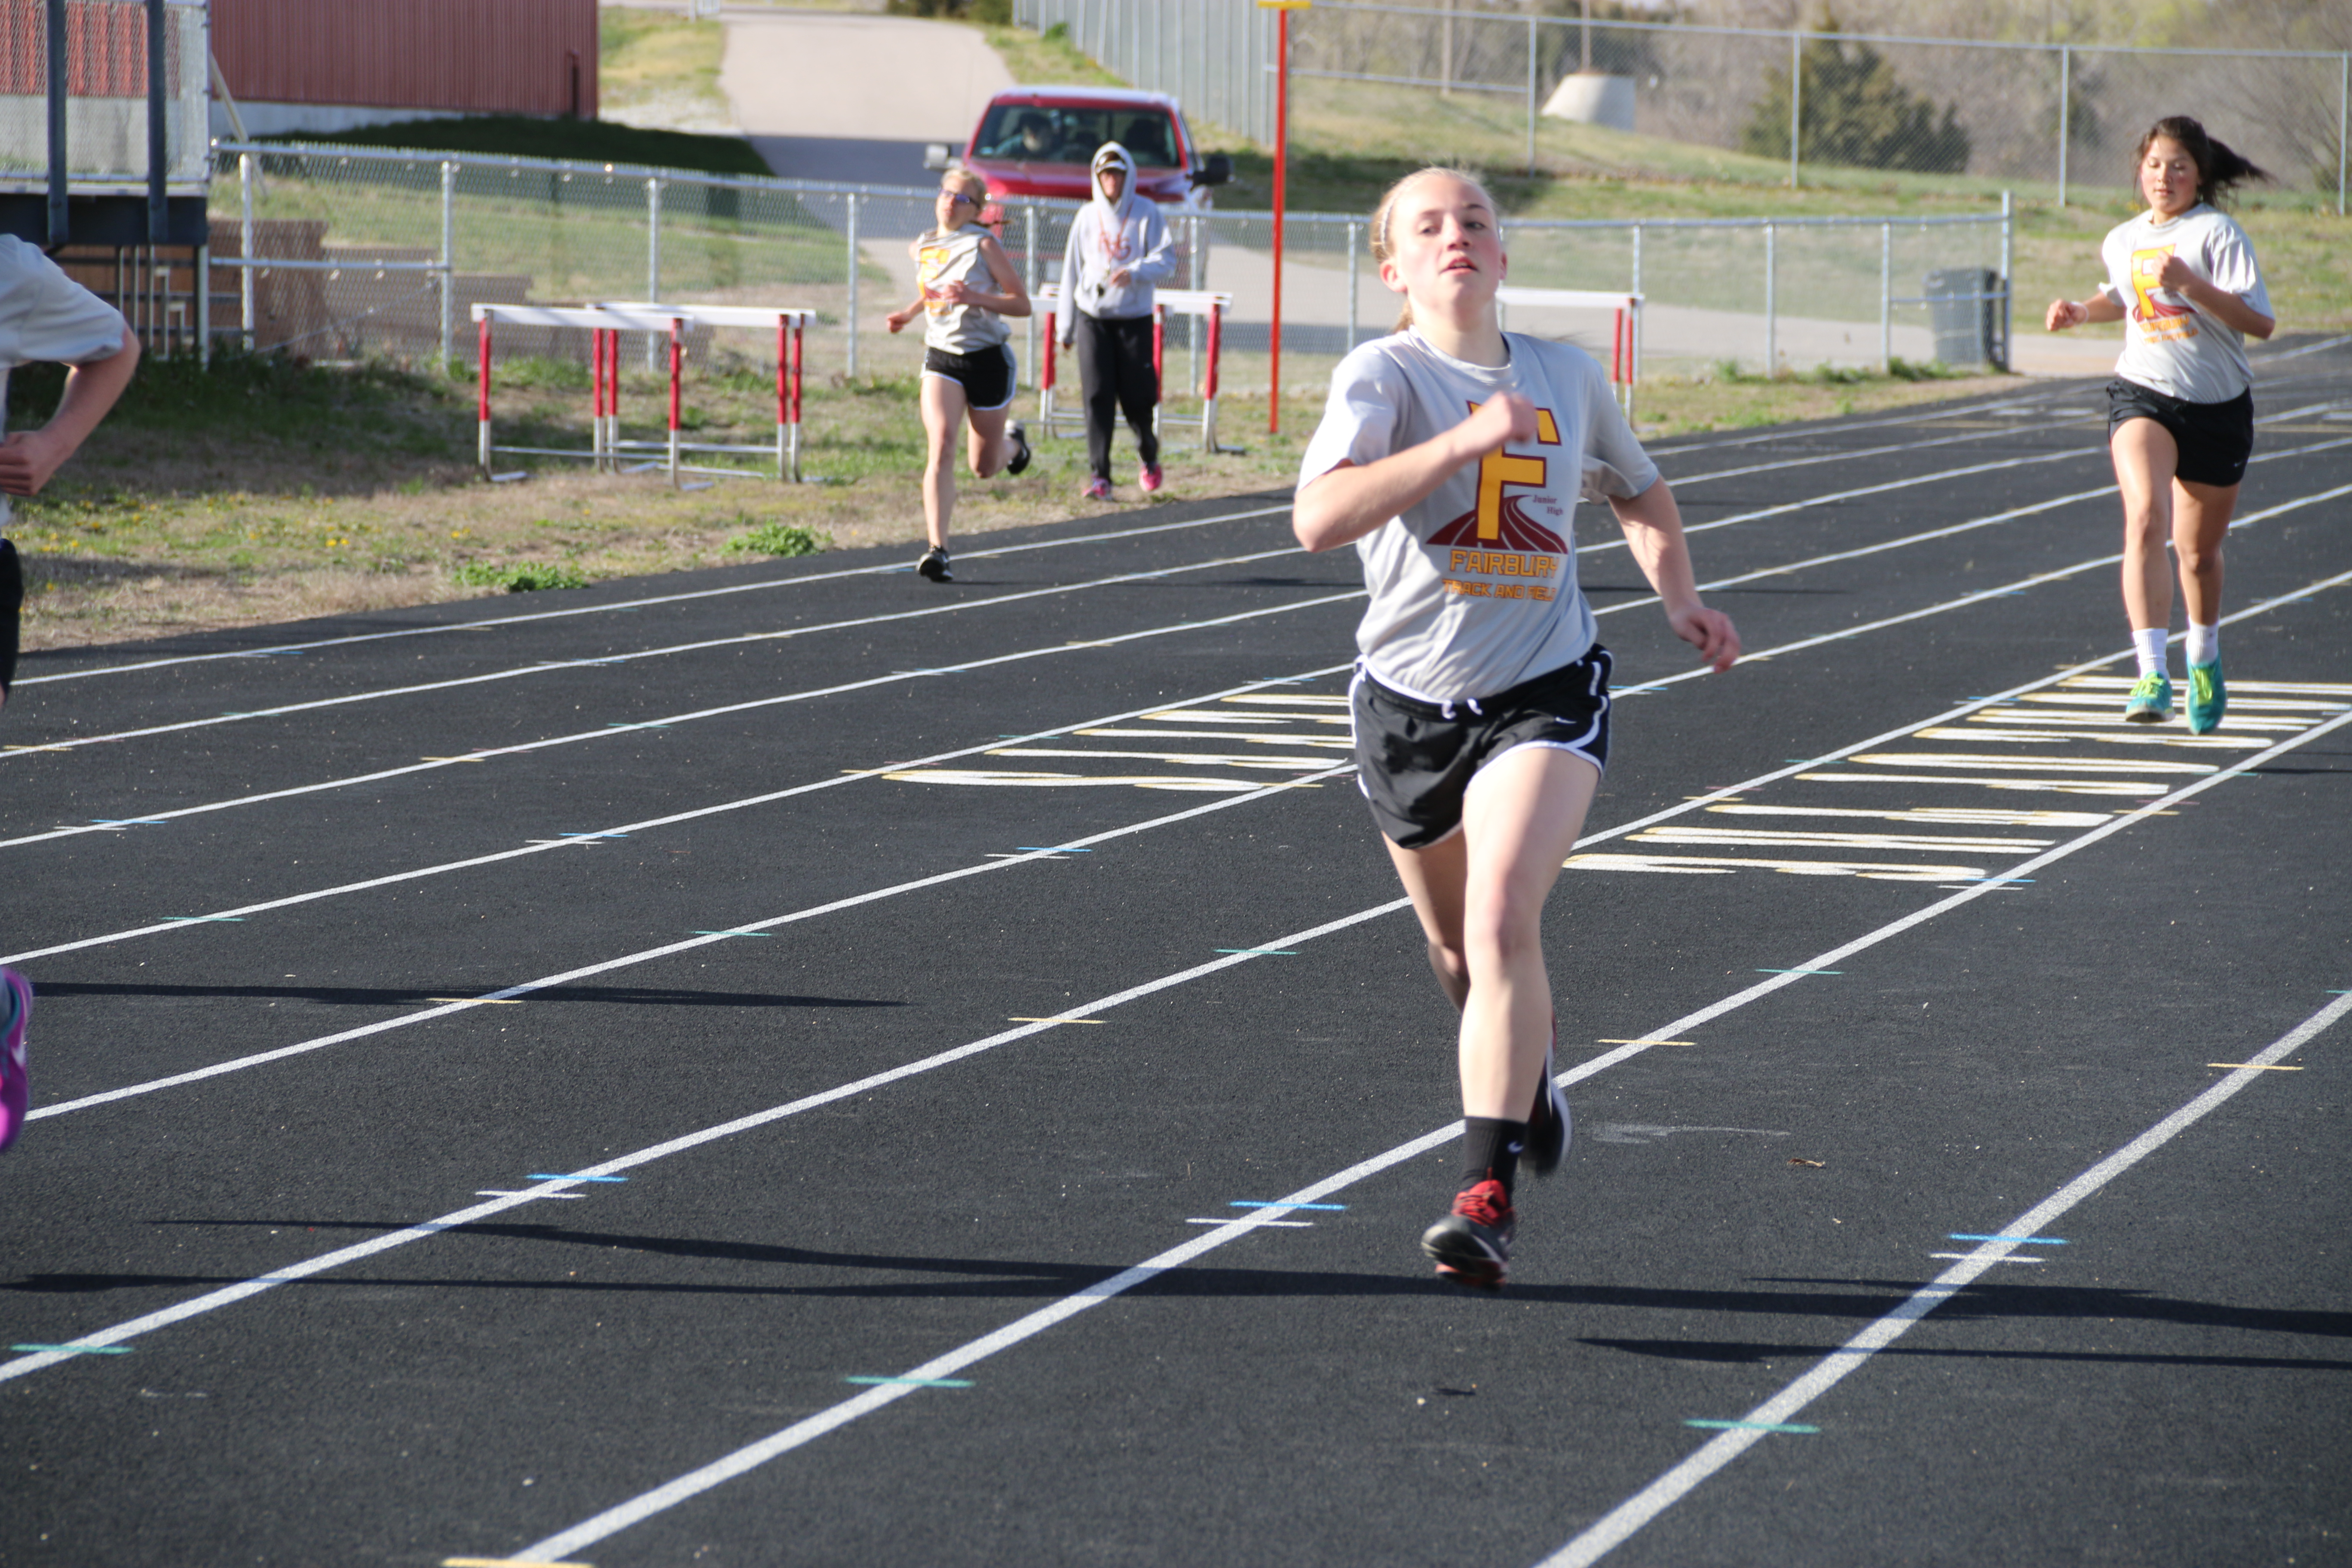 fairbury girls 23 scheetz, britney fairbury b 7:4435 girls 3200 meter run ===== super waterfall name year school finals points.